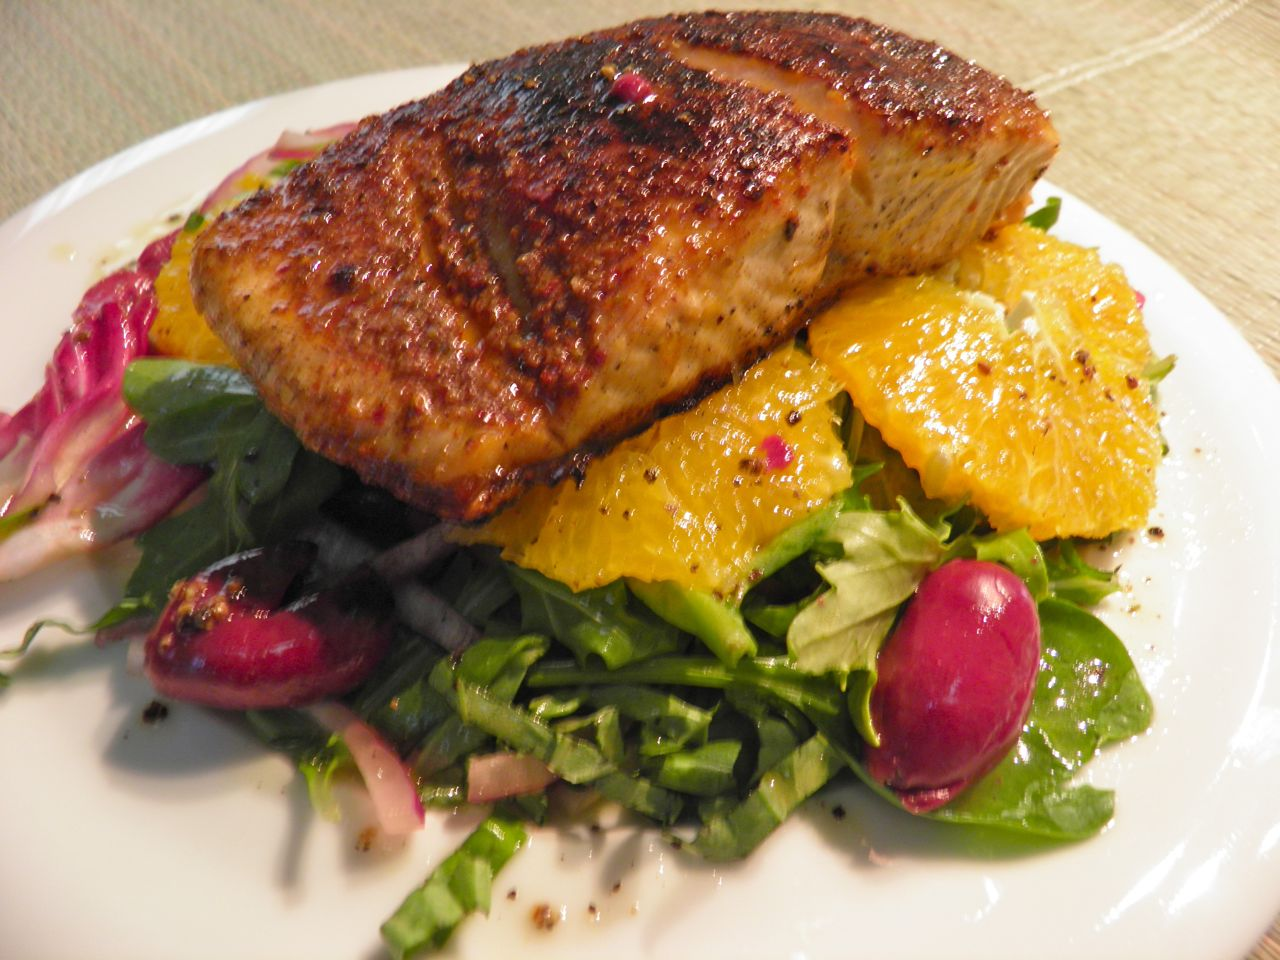 ... What's for Dinner: Moroccan Spiced Salmon with Orange Basil Salad